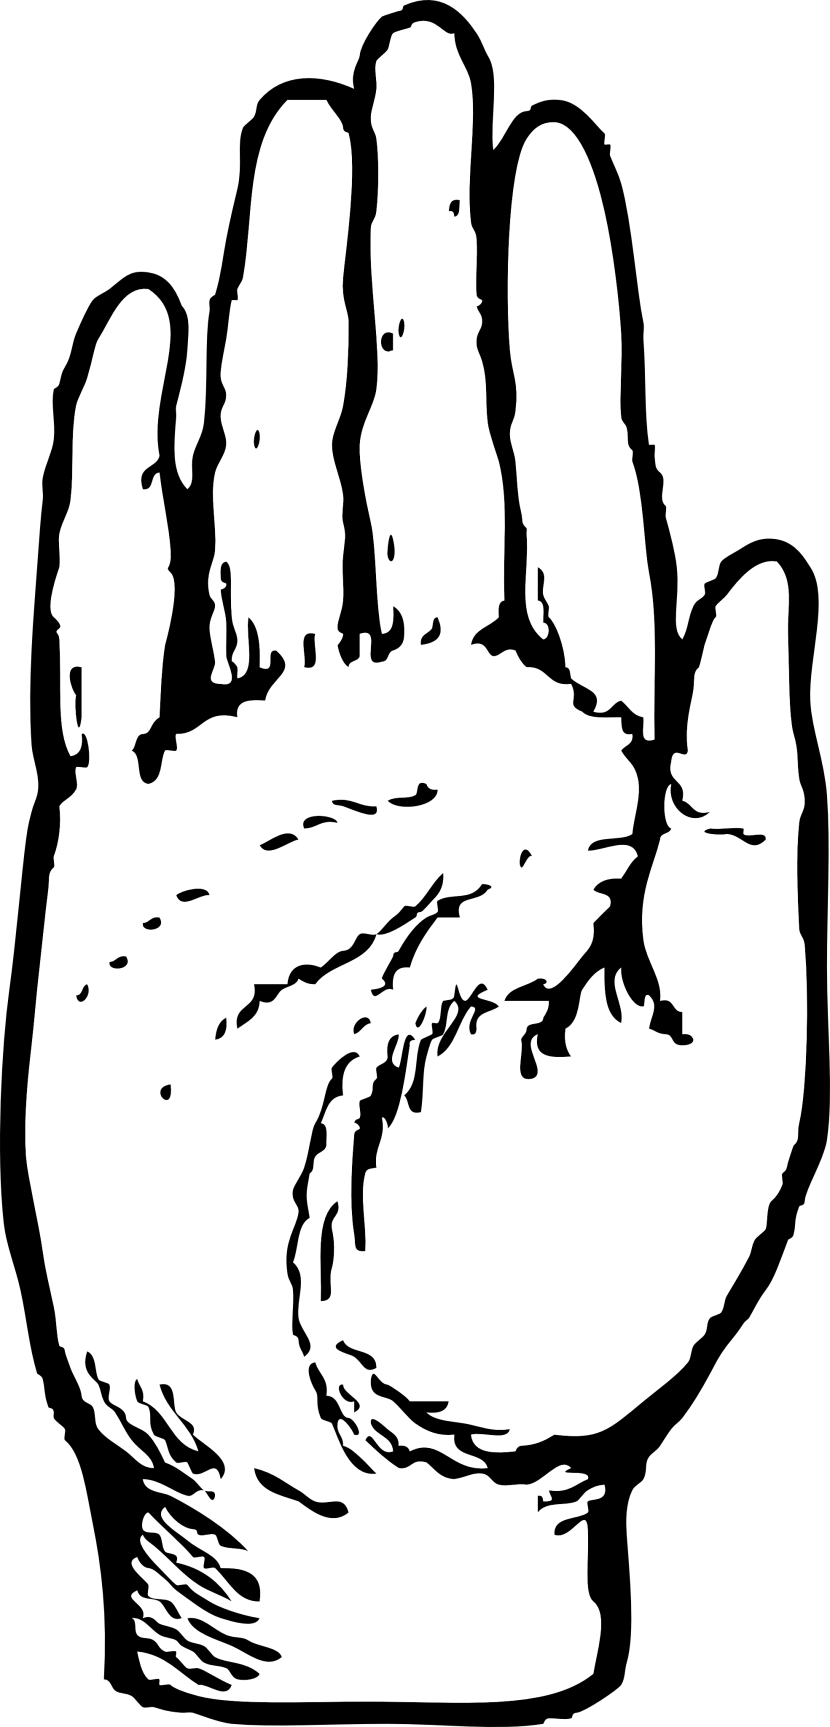 Helping Hand Clipart Free Clipart Images